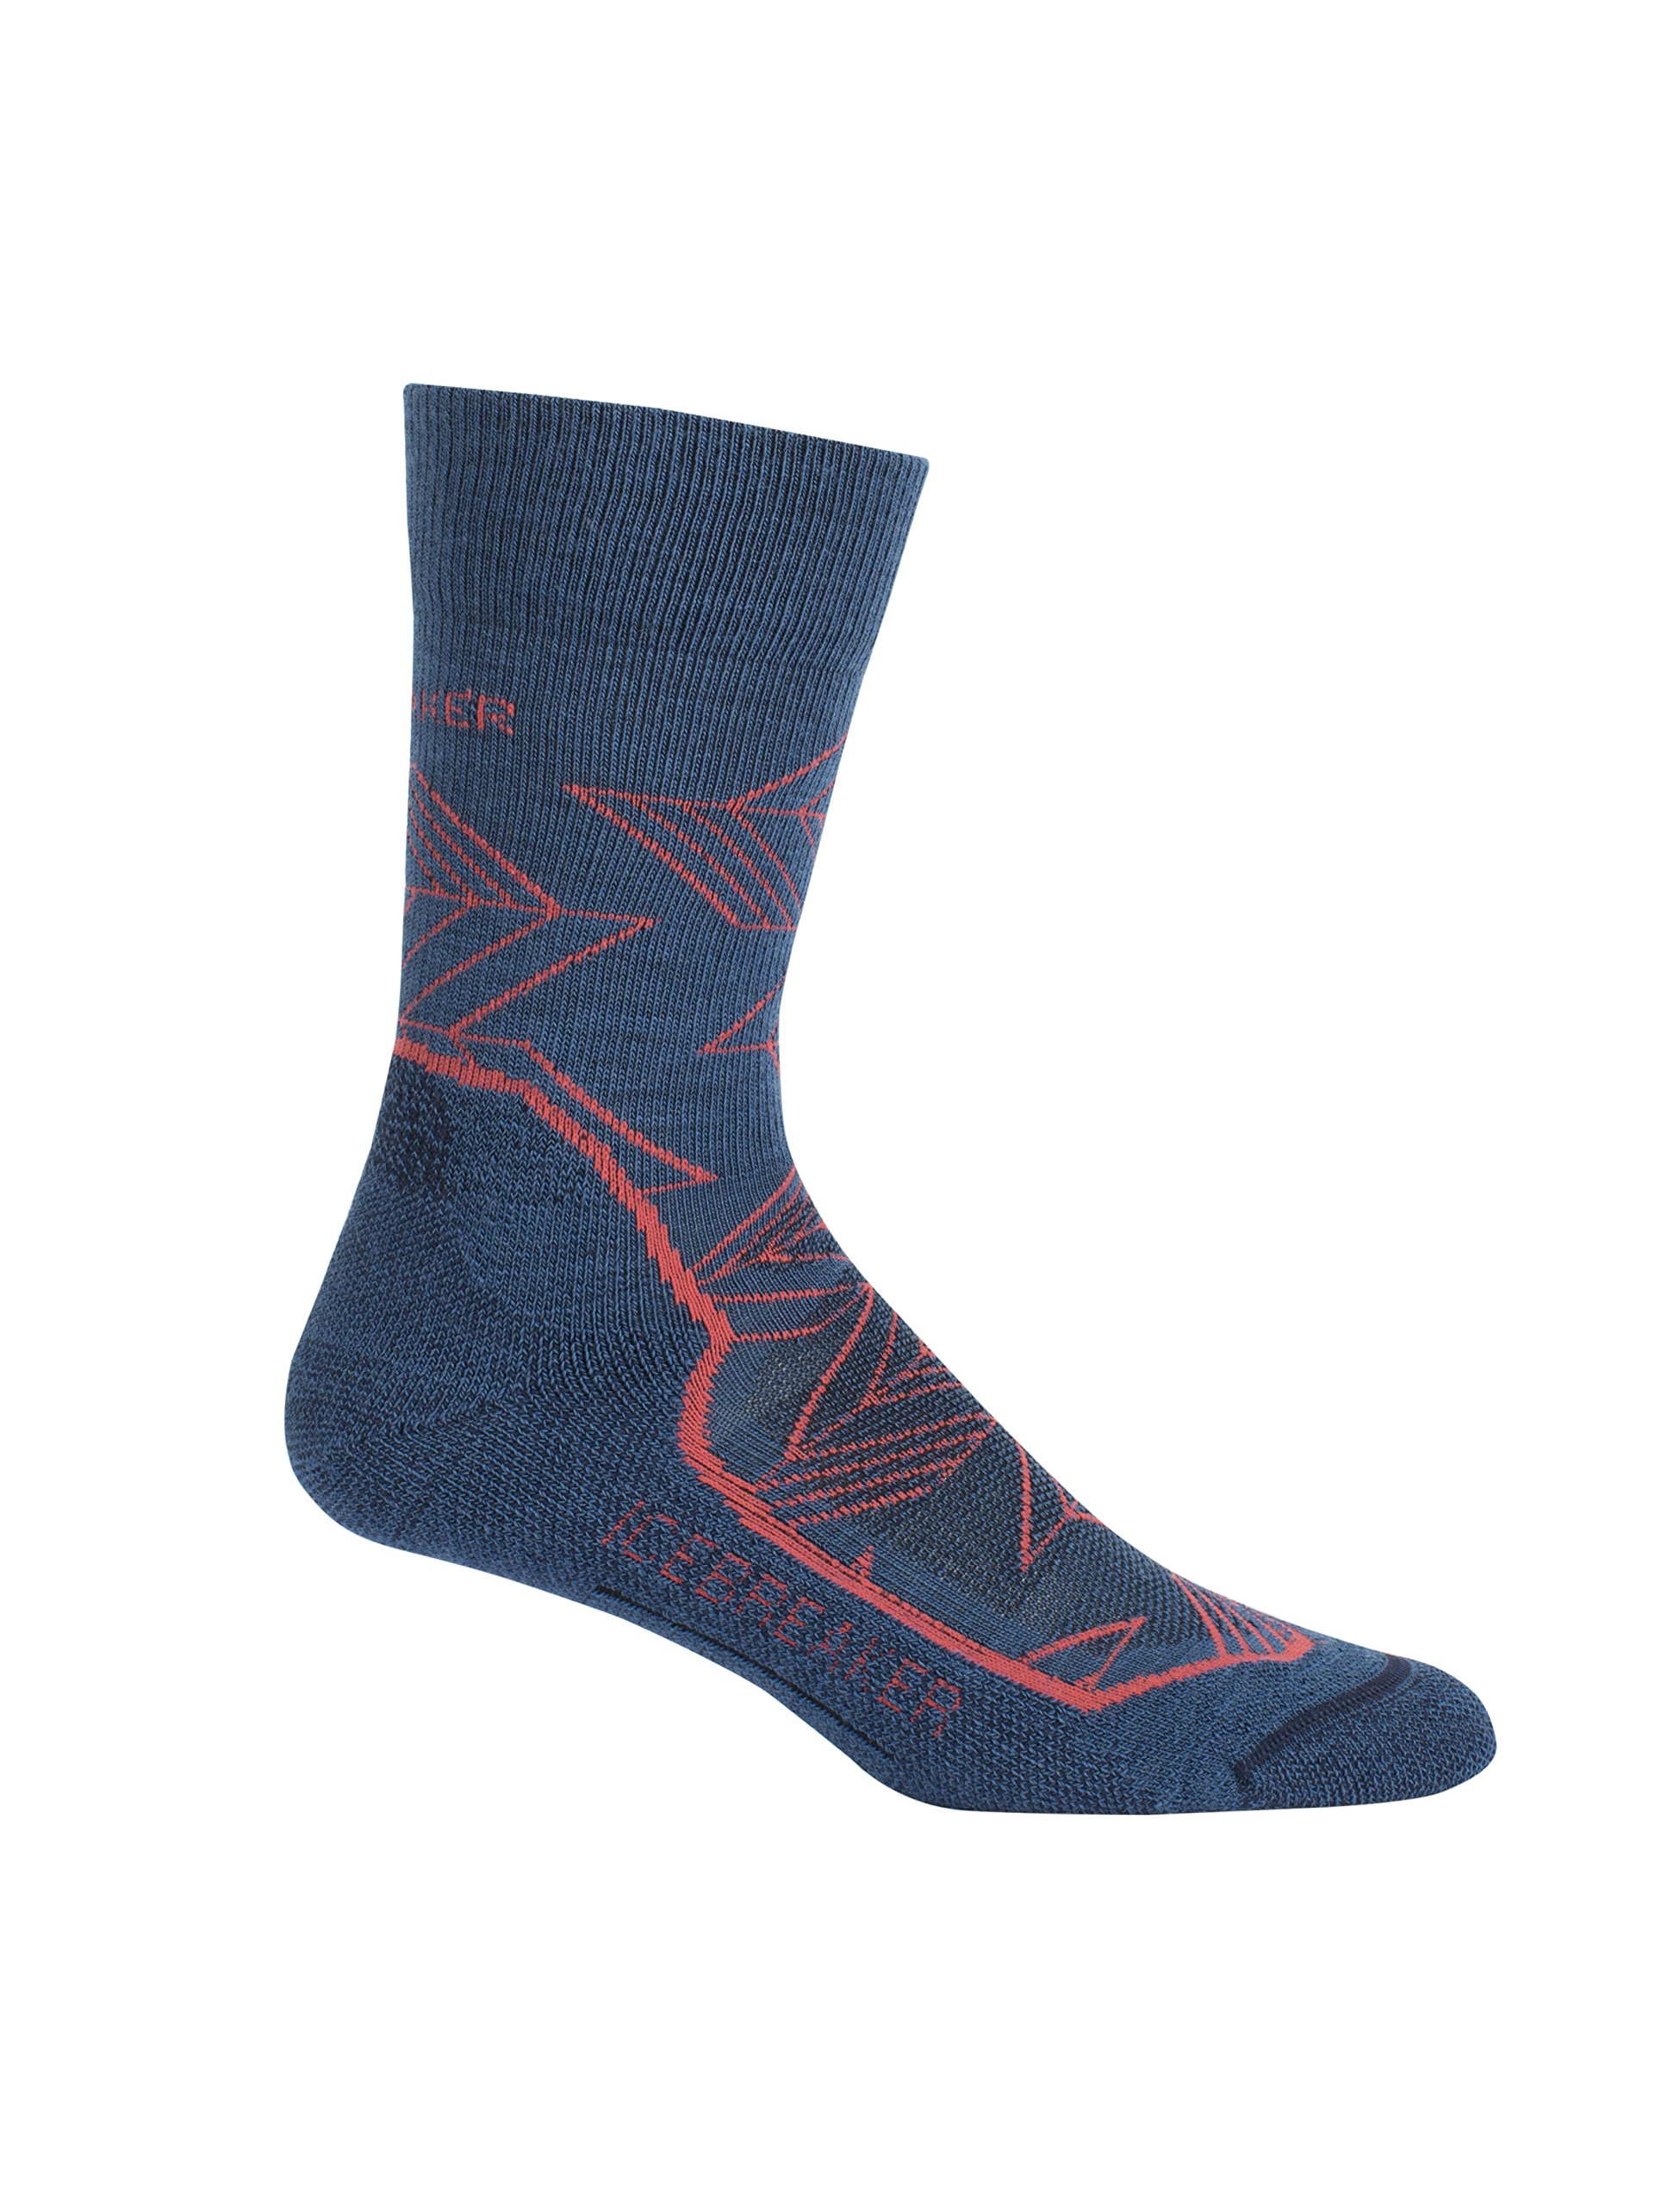 Icebreaker Merino Women's Hike+ Light Crew Patterns Socks, Intersecting Arrows/Prussian Blue/Poppy Red/Midnight Navy, Small by Icebreaker Merino